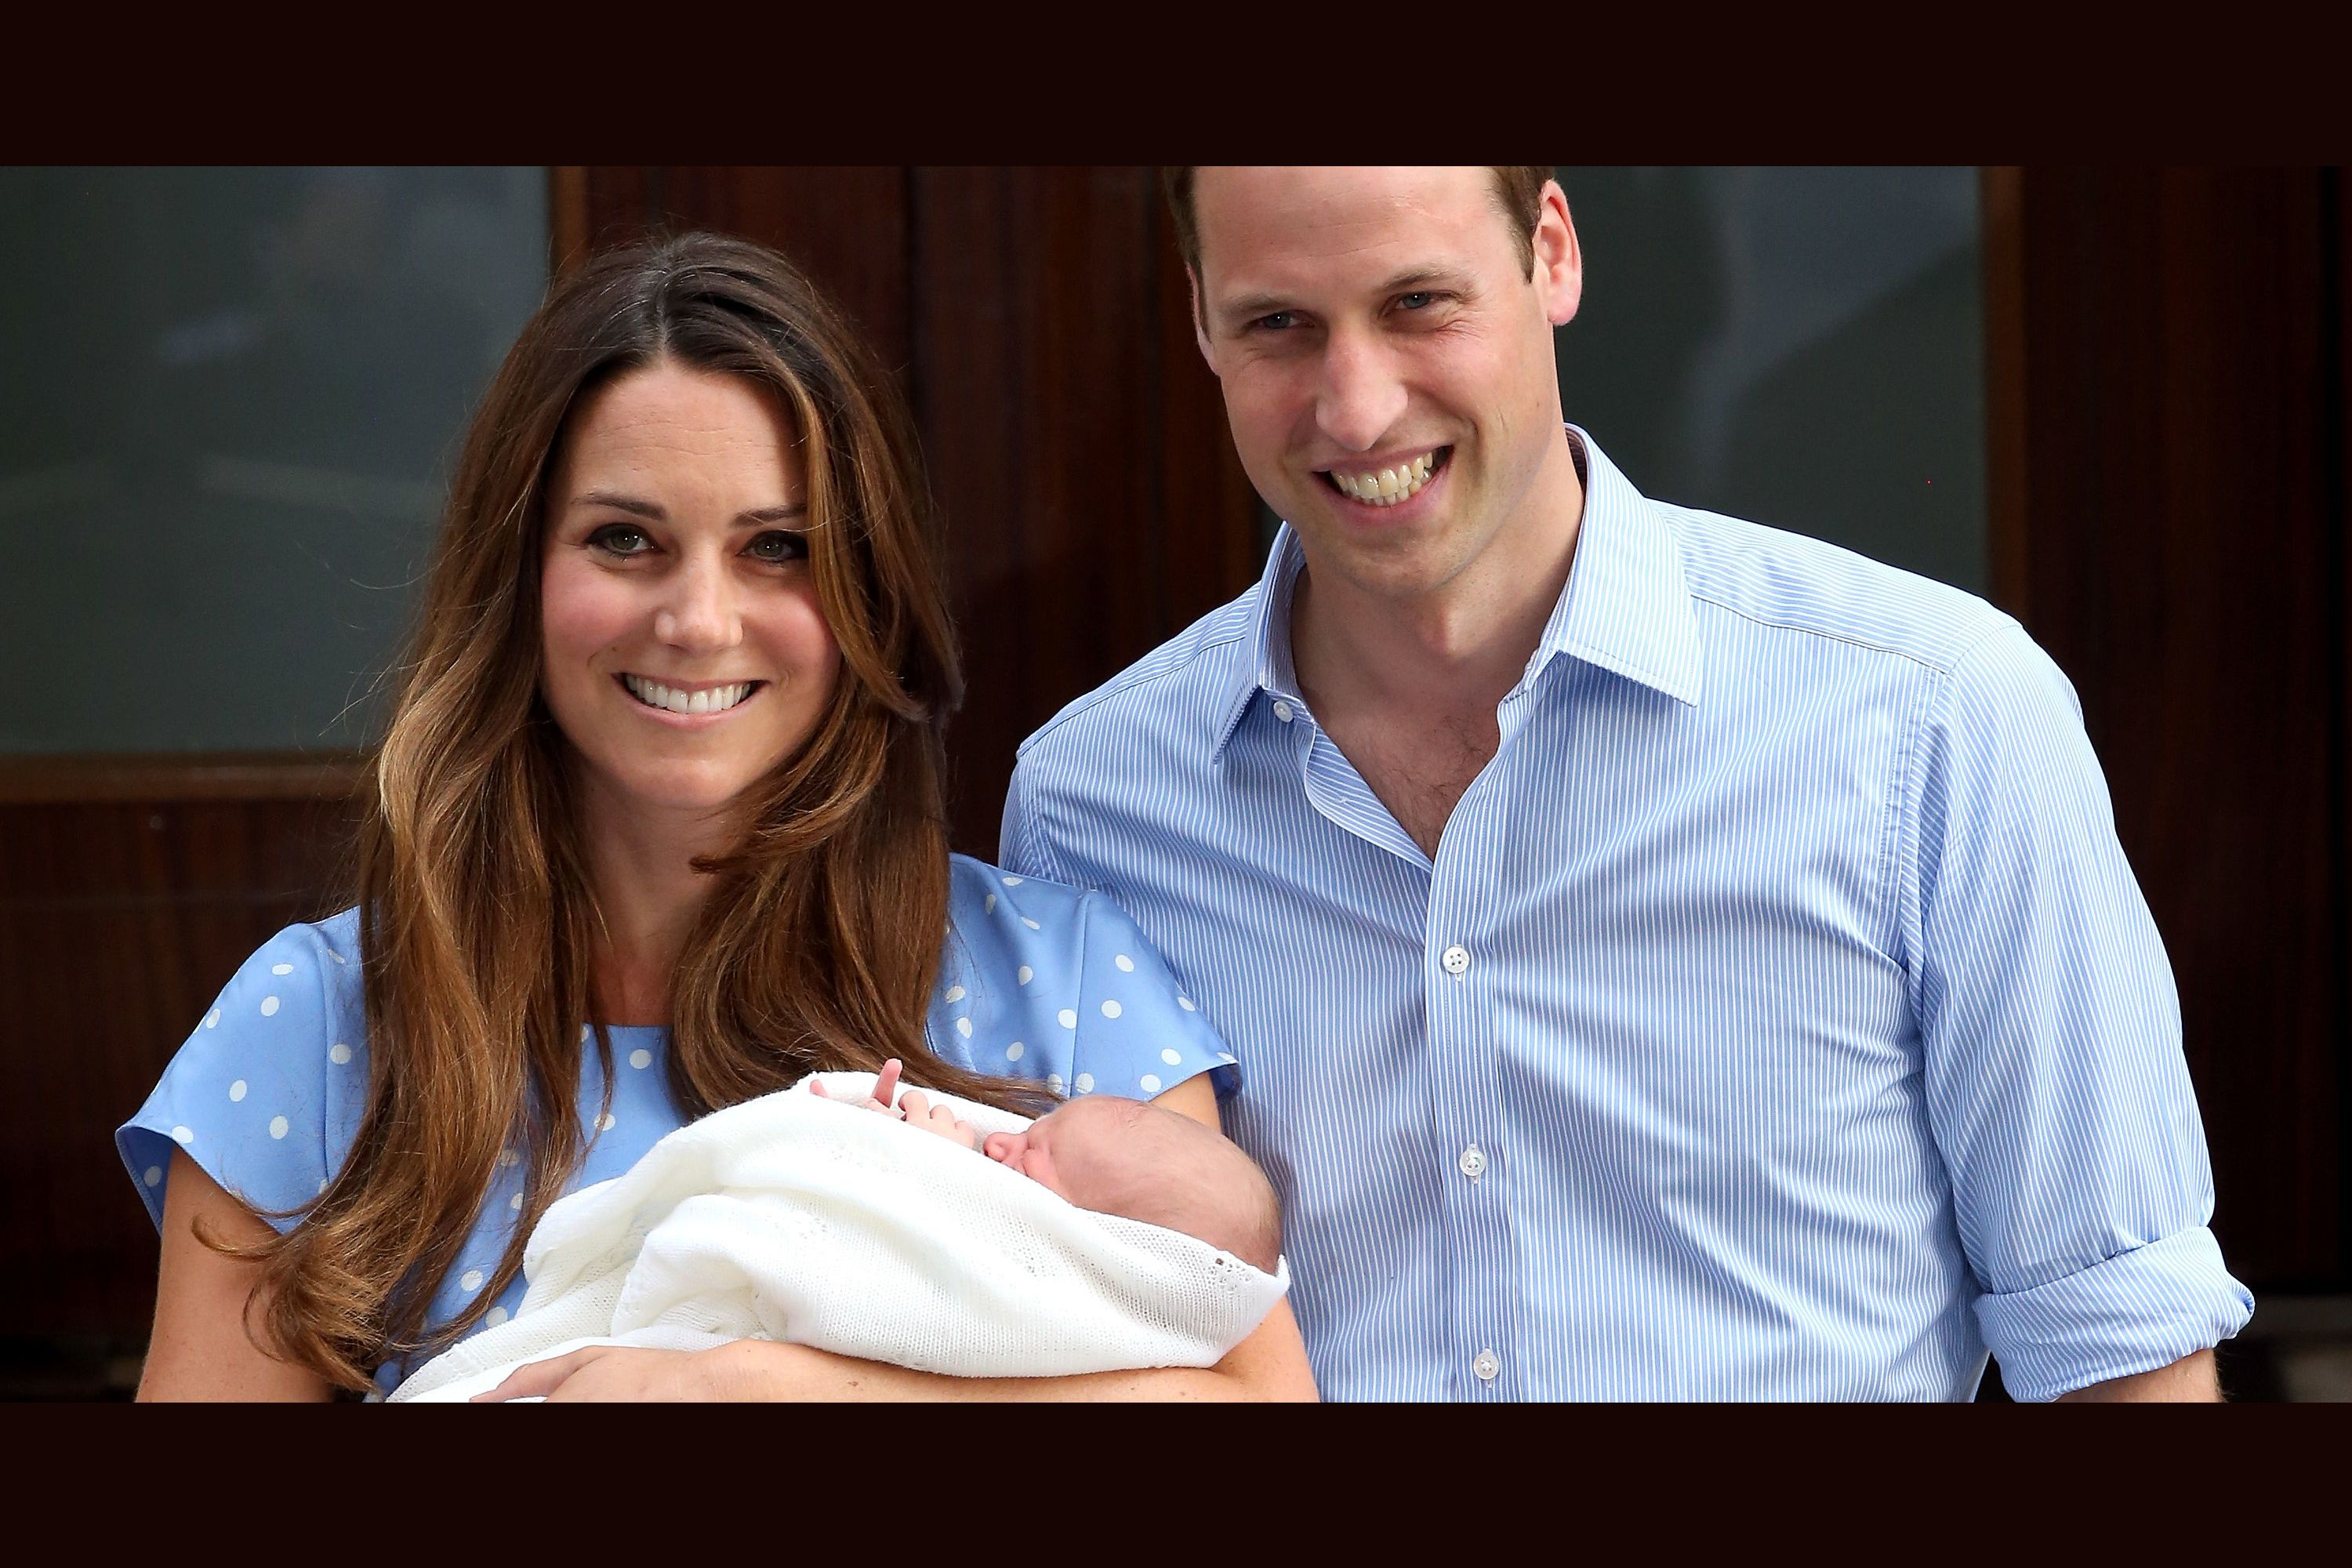 What Will Kate Middleton Name Her New Baby?